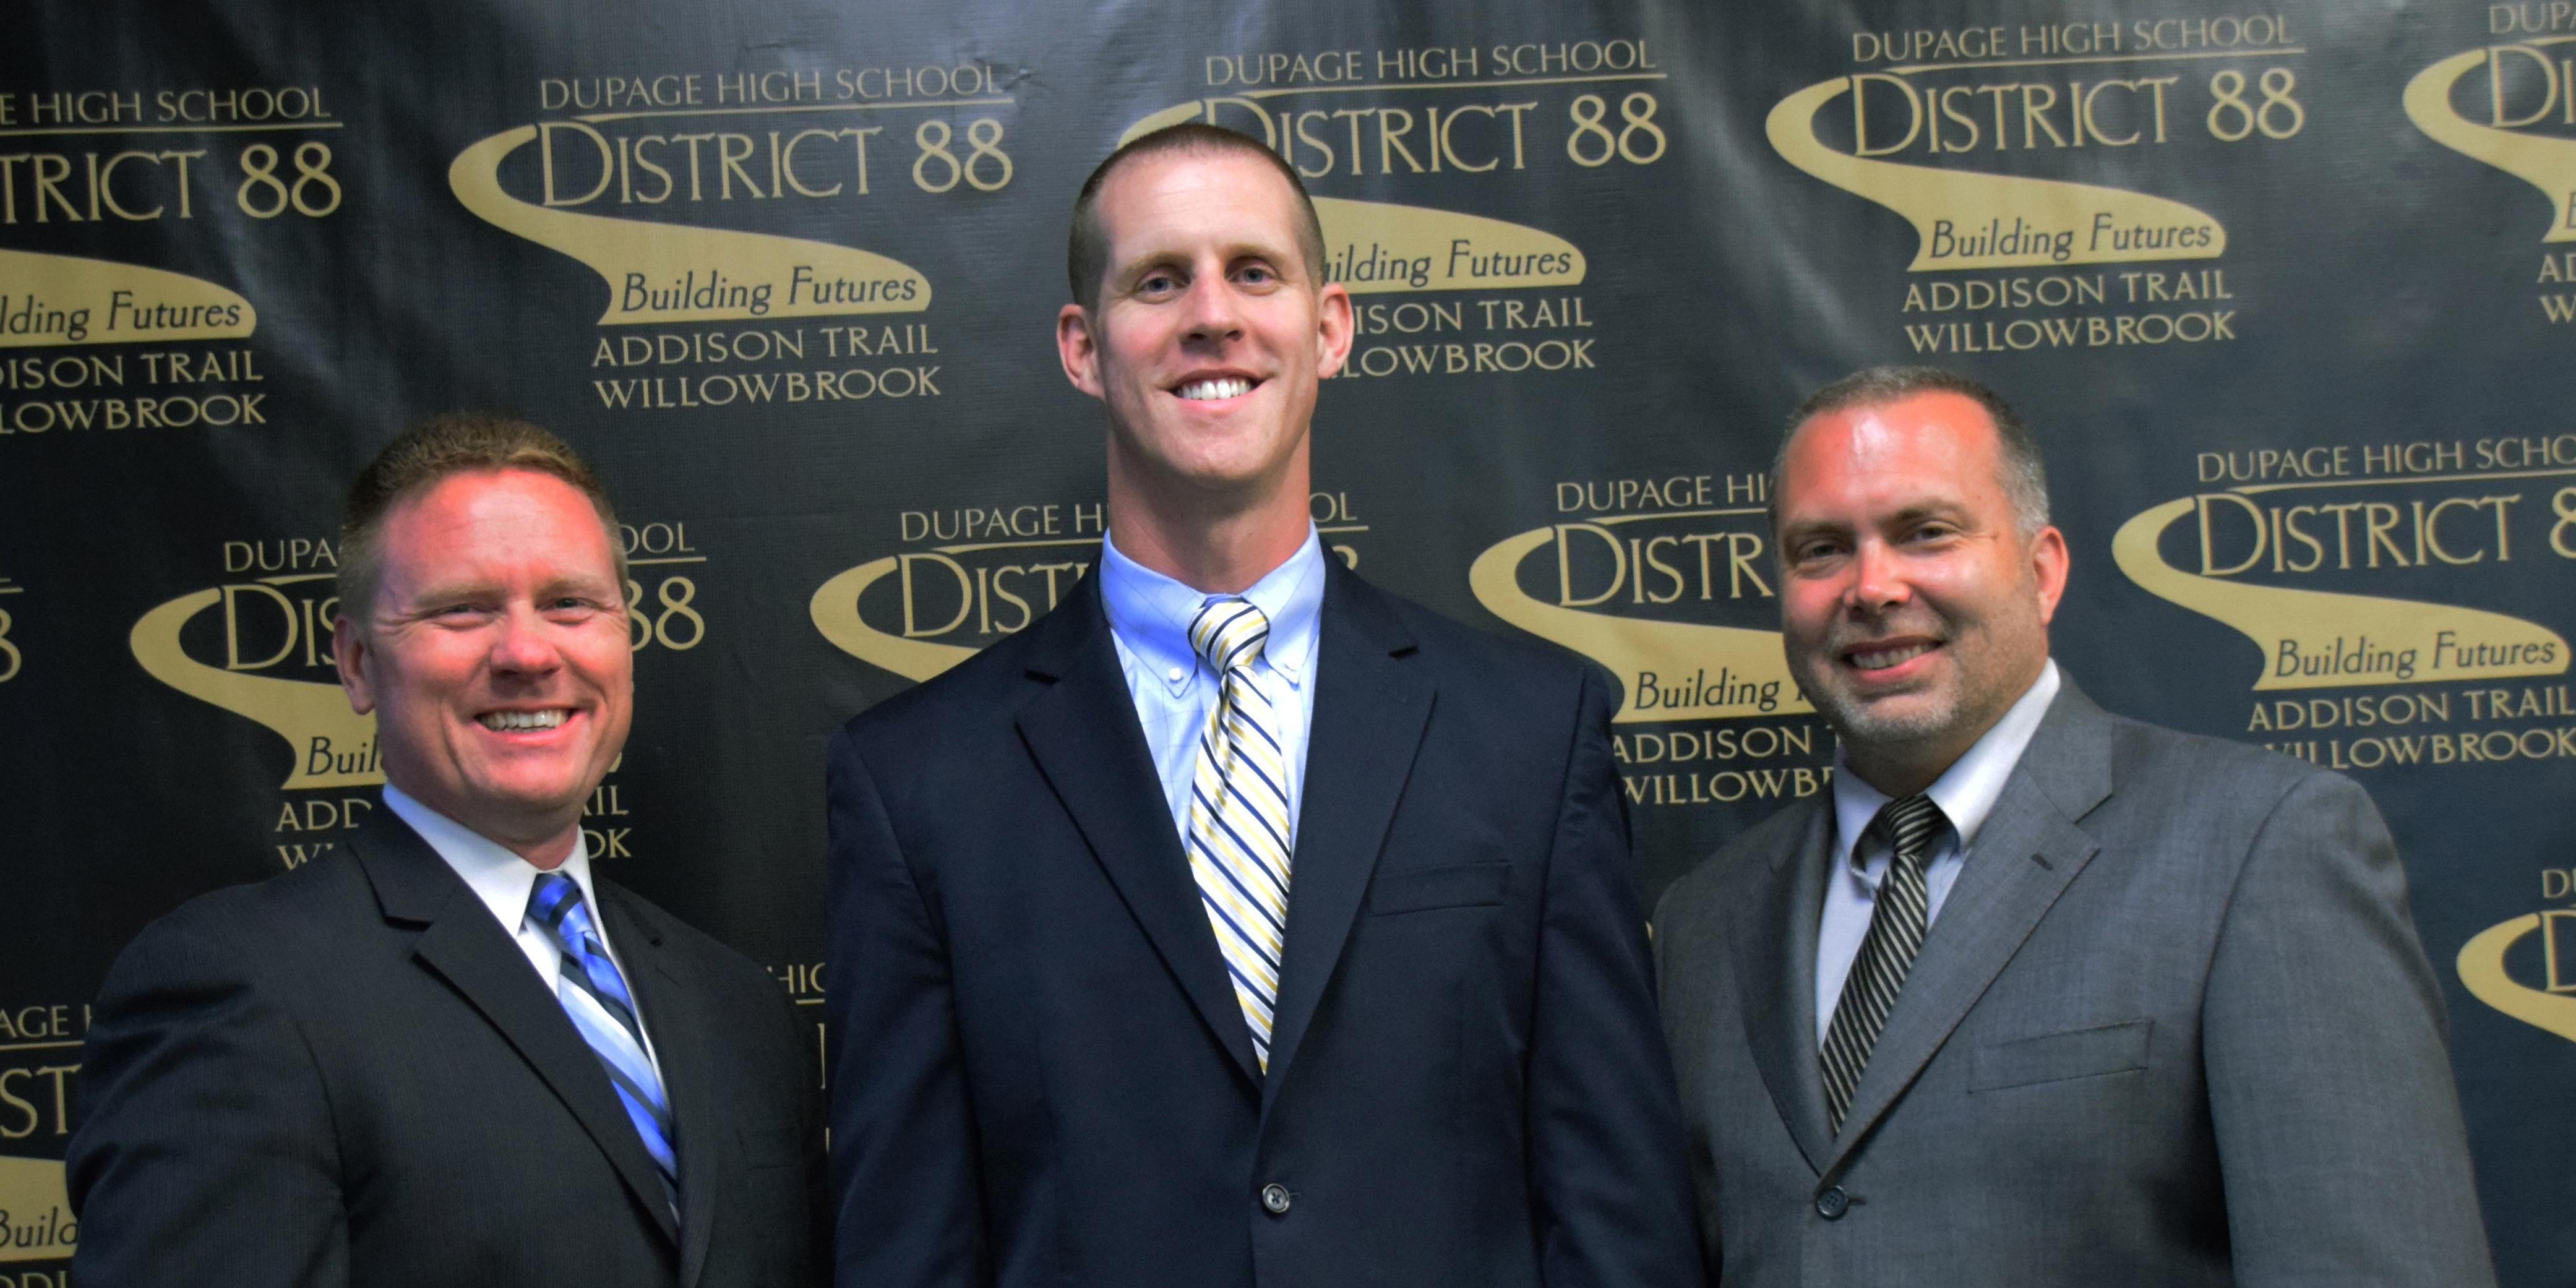 District 88 Board of Education recognizes three administrators for earning doctoral degrees